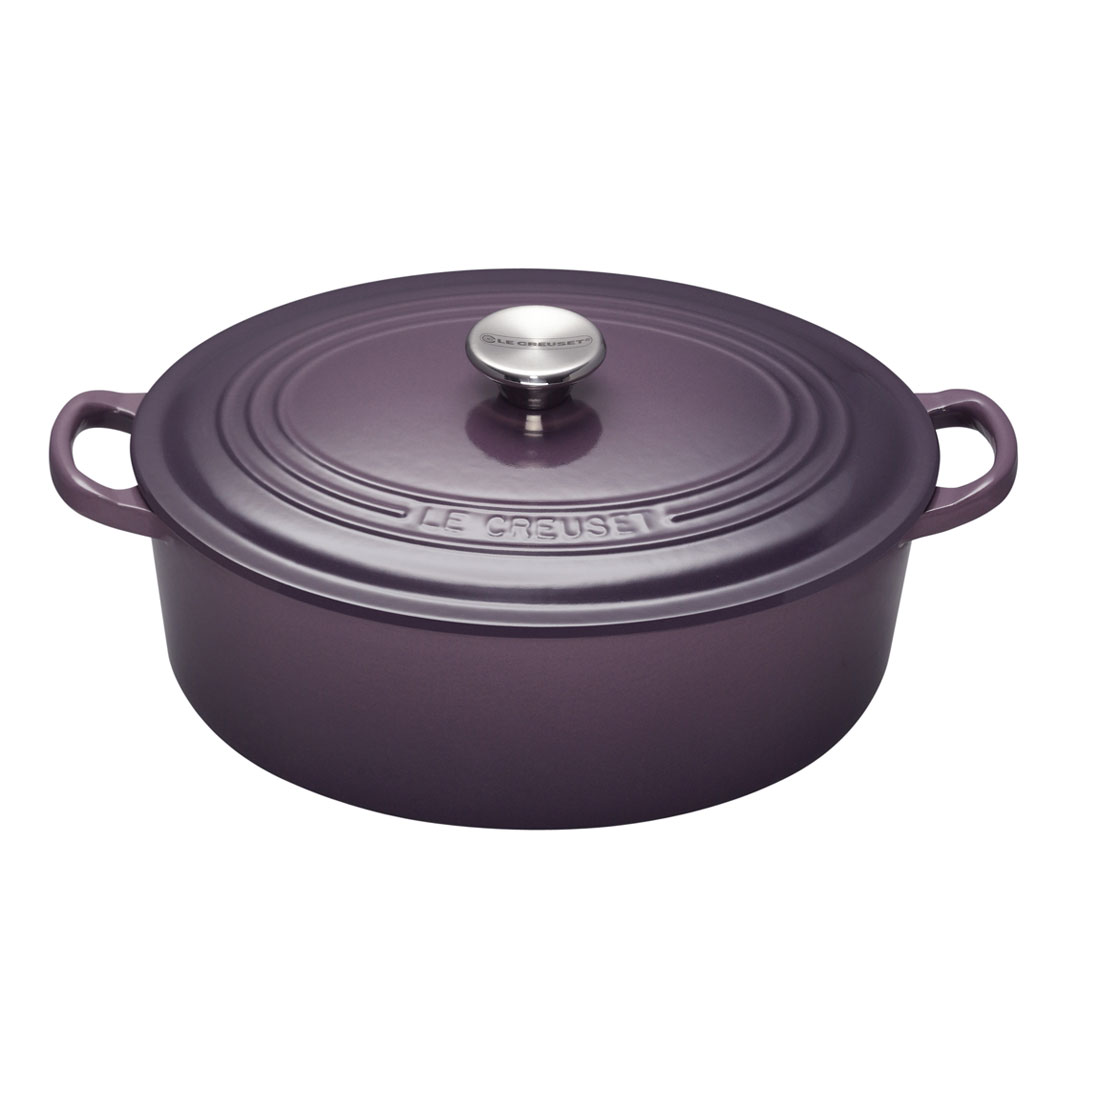 le creuset cocotte ovale tradition en fonte 29 cm comparer avec. Black Bedroom Furniture Sets. Home Design Ideas